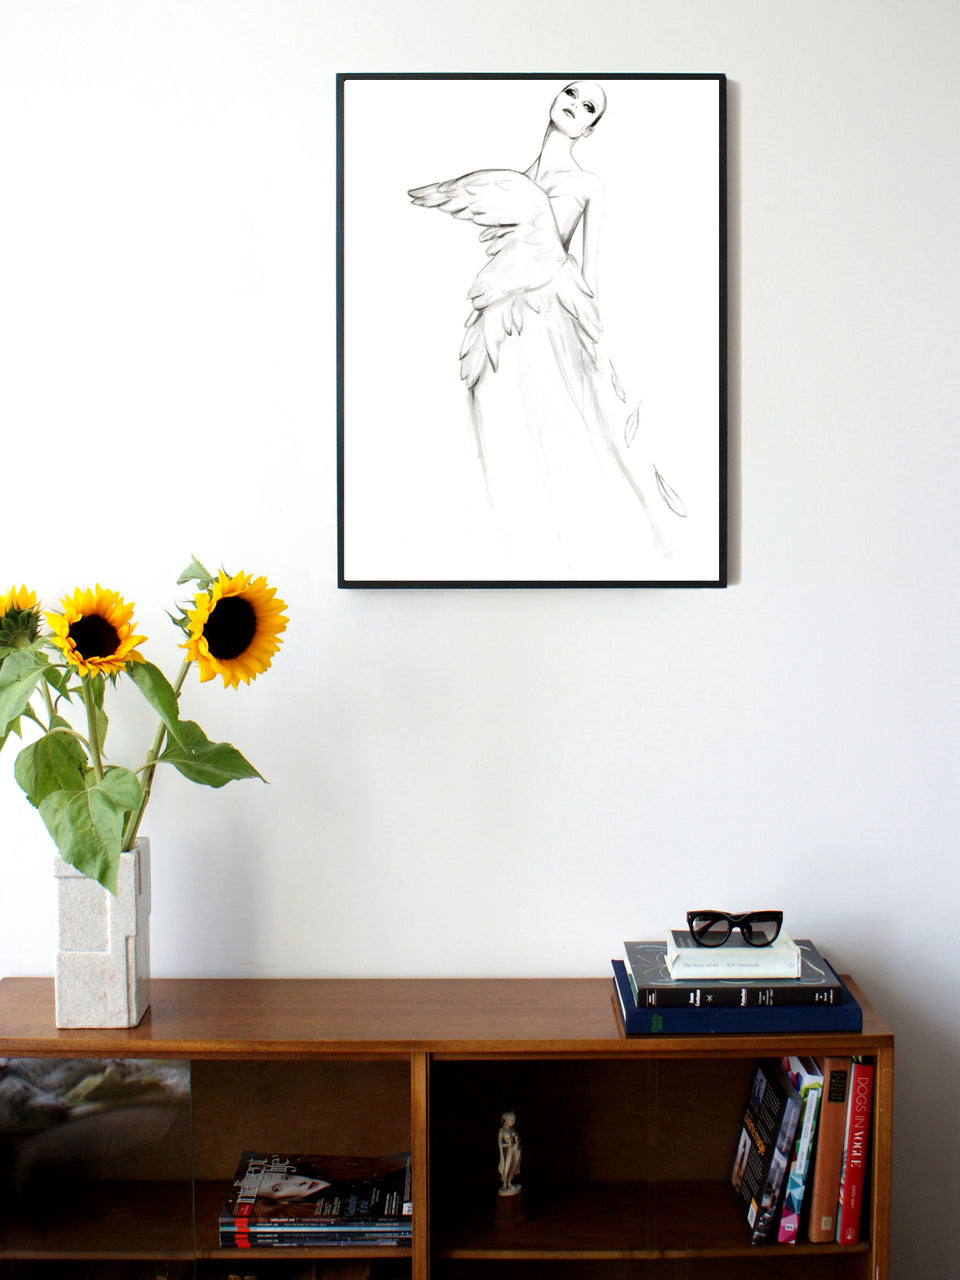 Fashion illustration print of Swan by Sjoukje Bierma - woman in swan-wing dress - 60 x 80 cm framed